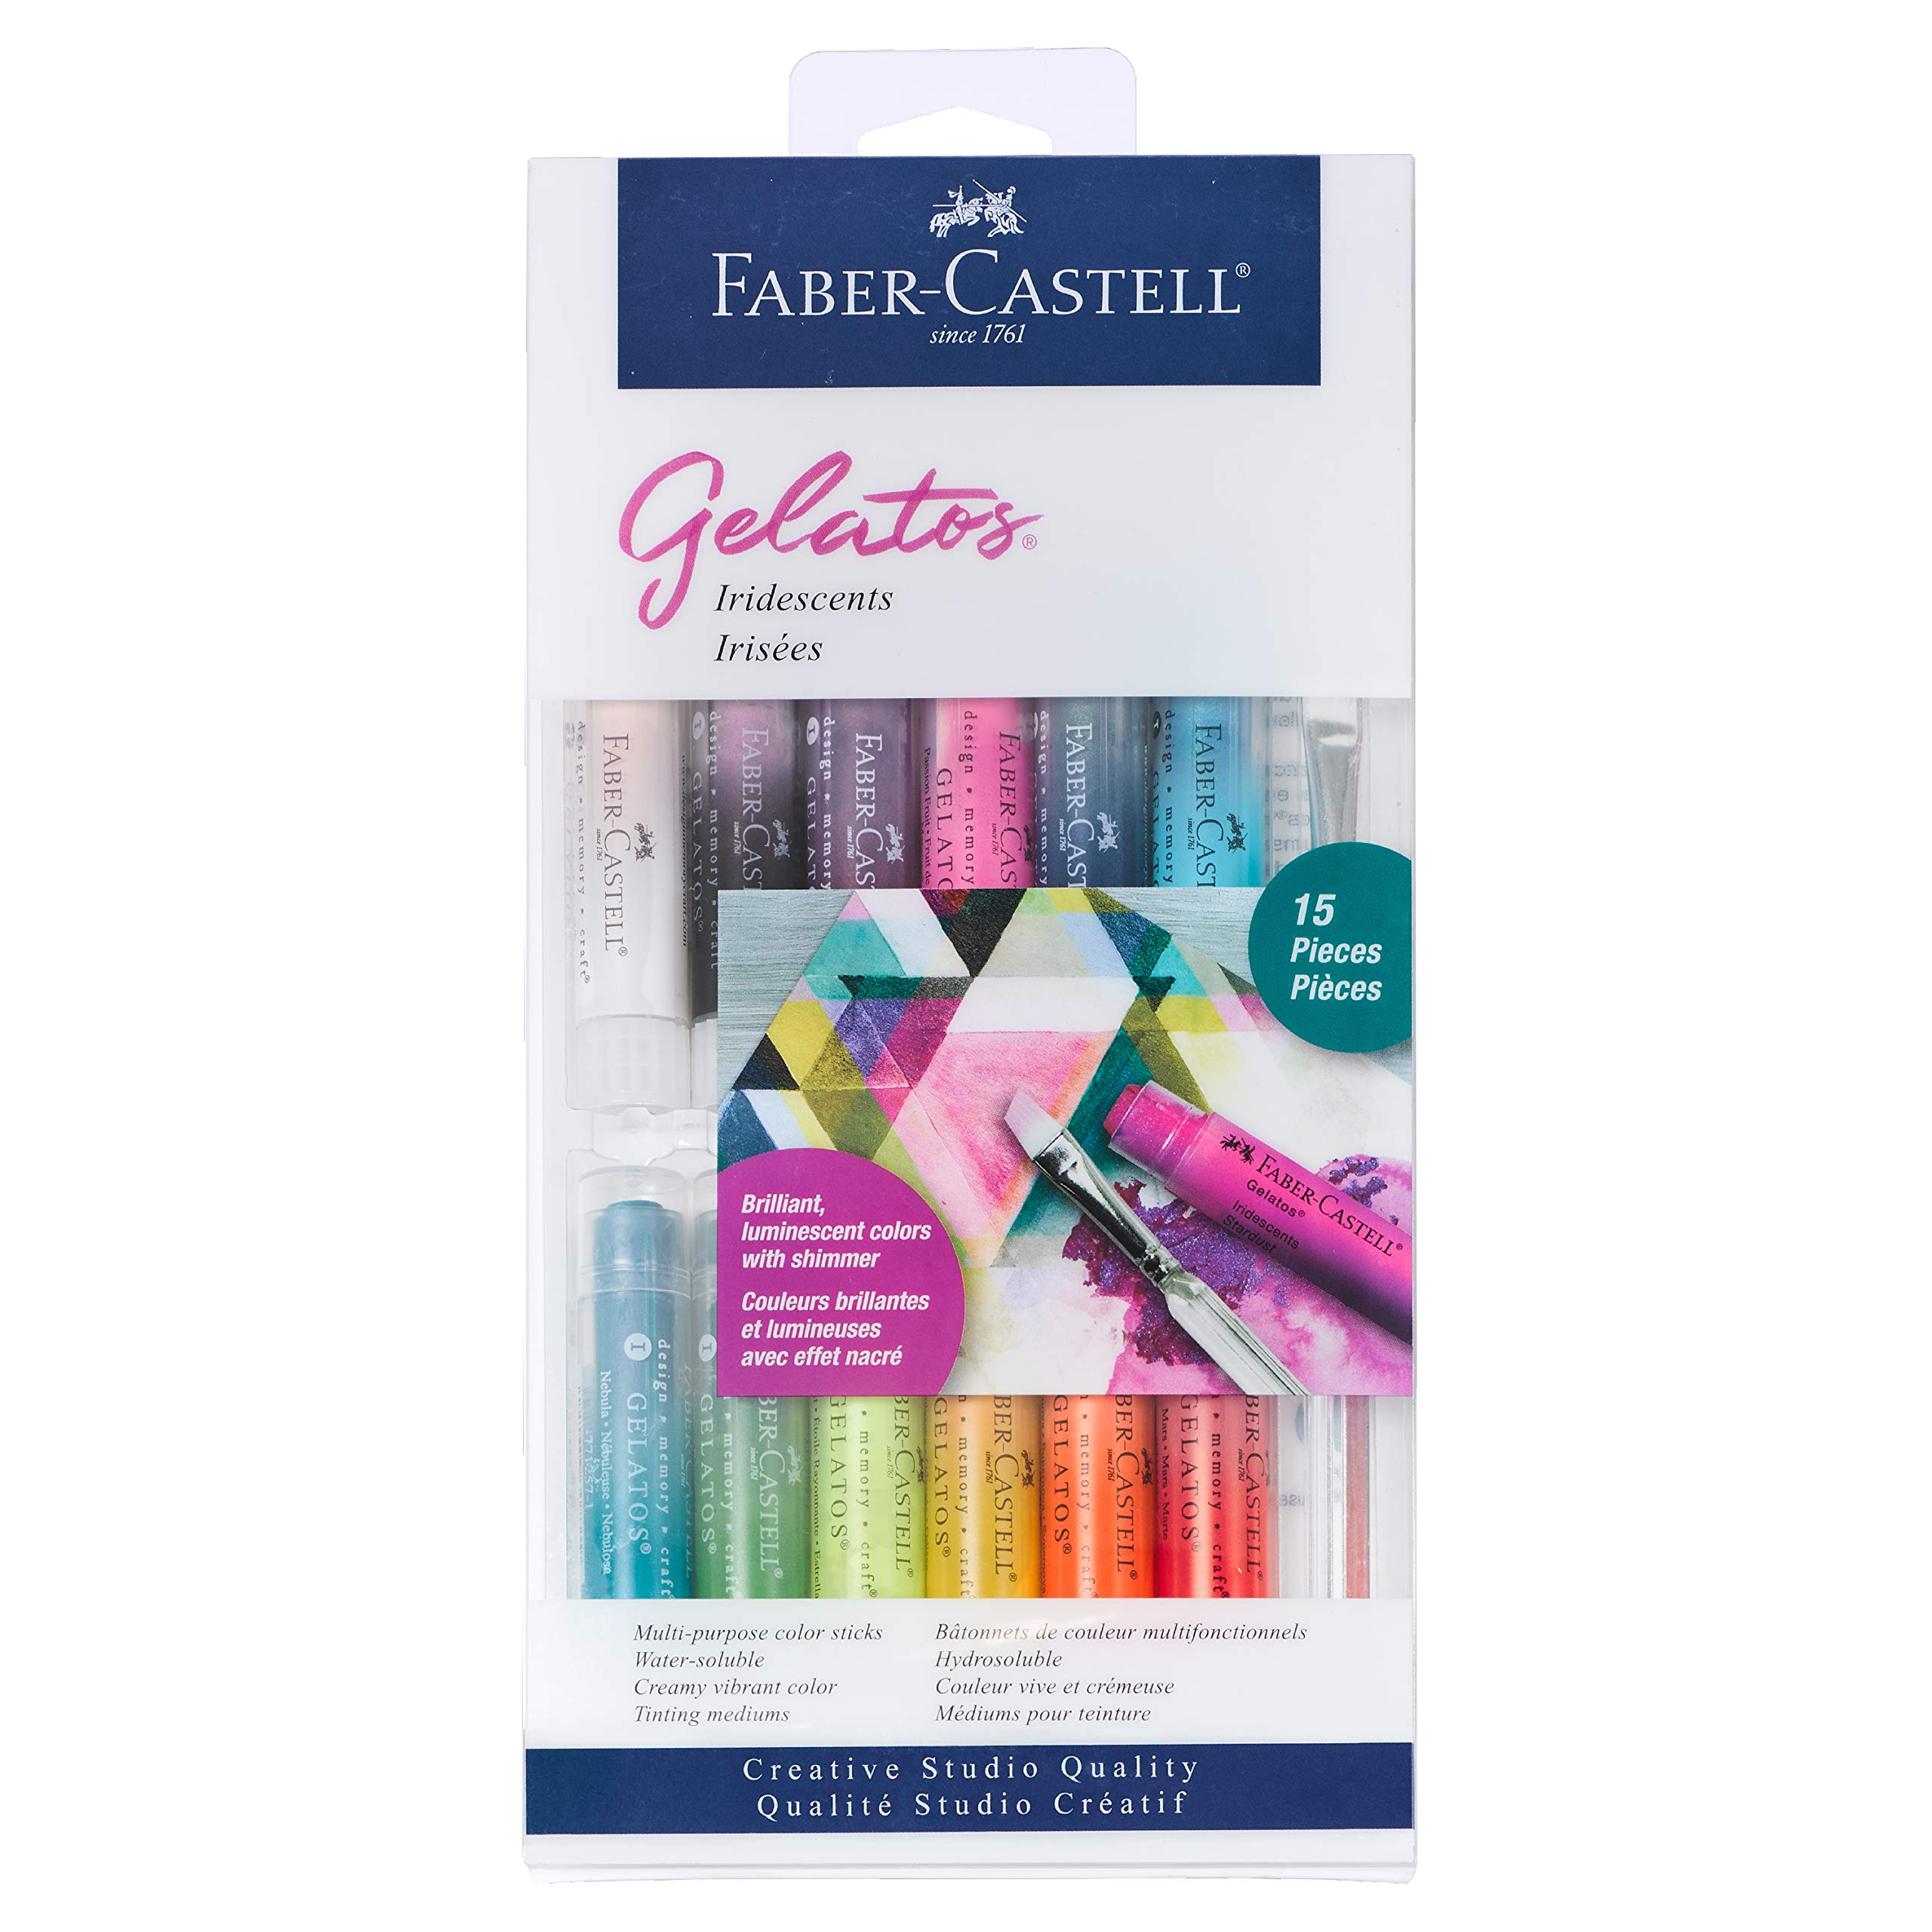 Faber-Castell Gelatos Colors Set, Iridescents - Water Soluble Pigment Crayons - 15 Iridescent Colors